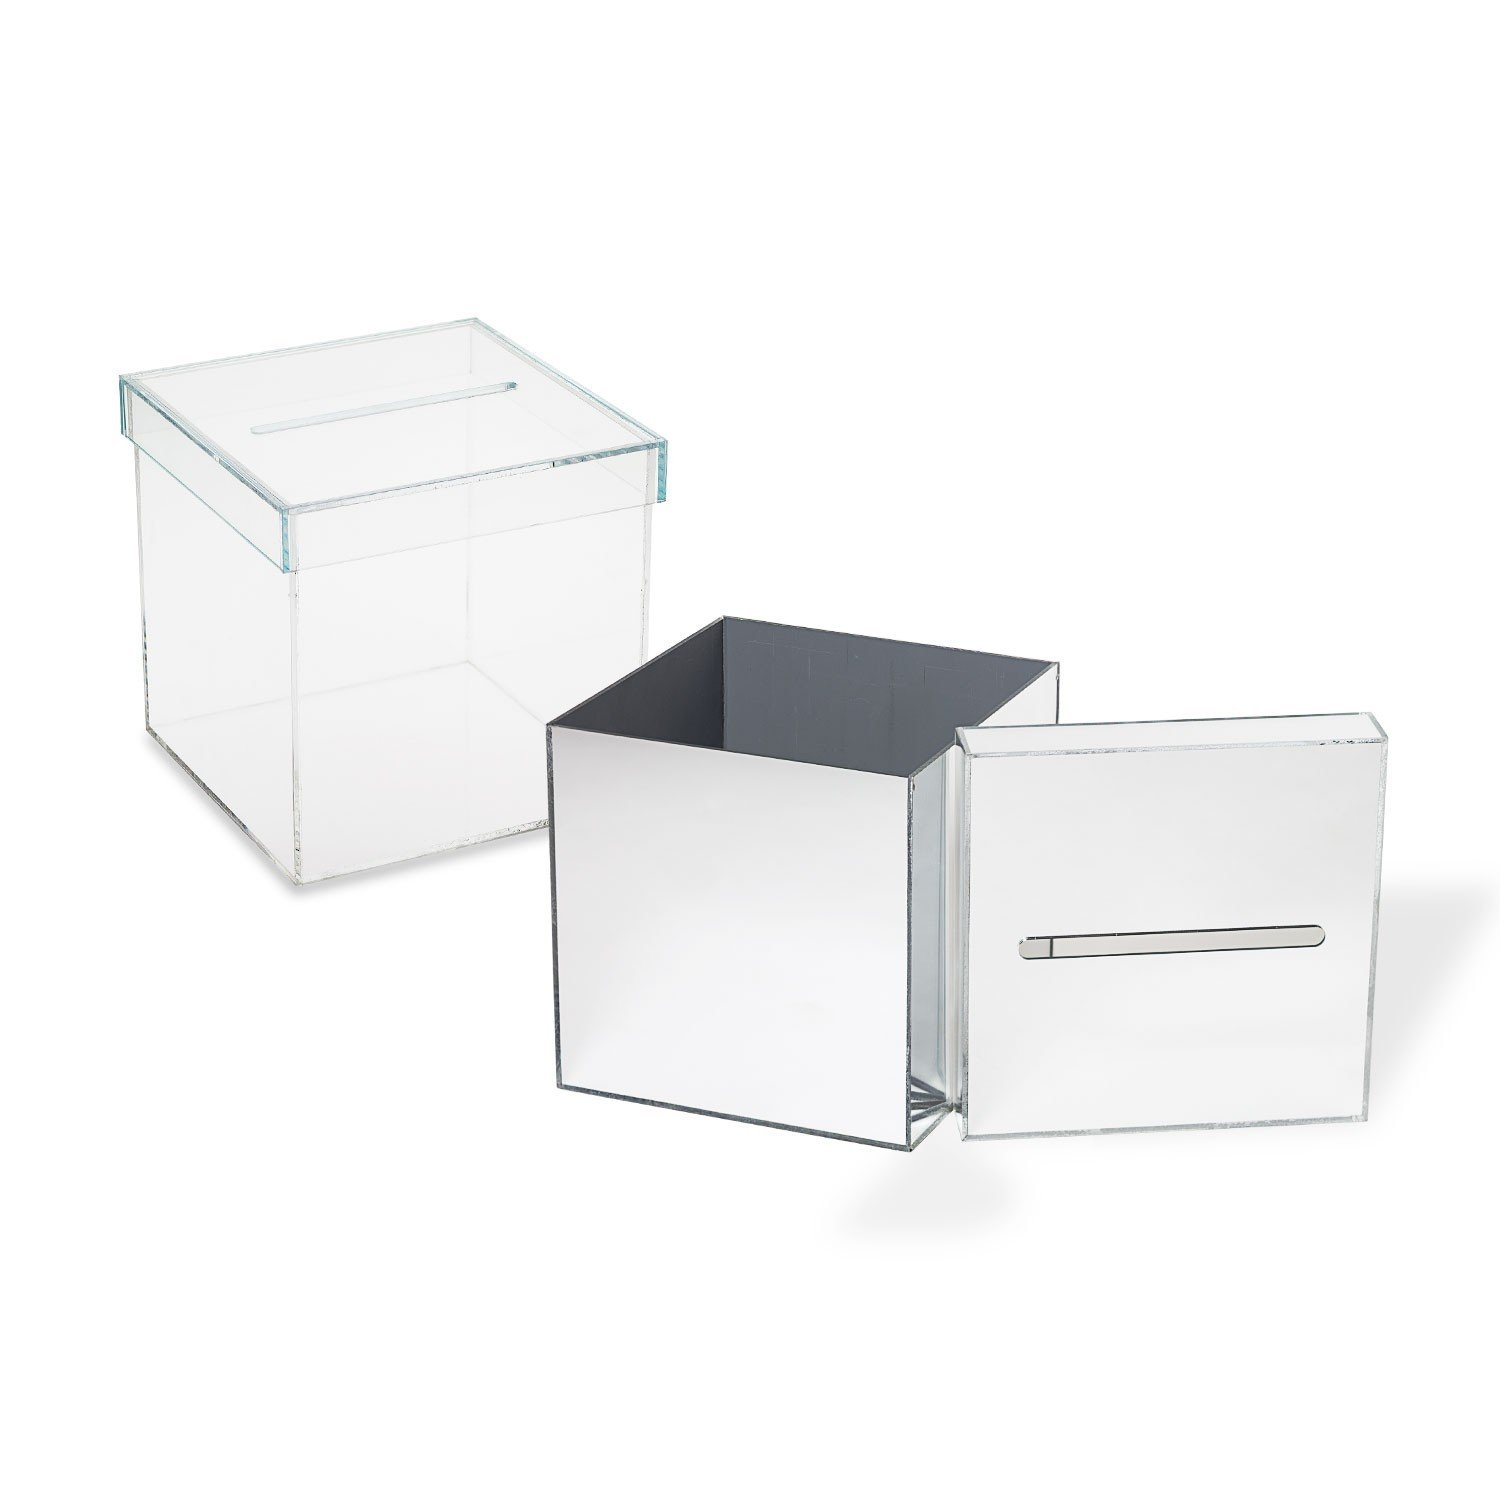 Source One Outstanding Quality Acrylic Donation Box With Removable Lid, Perfect for Weddings, Donations, Any Occasion (12x12x12, Mirror)